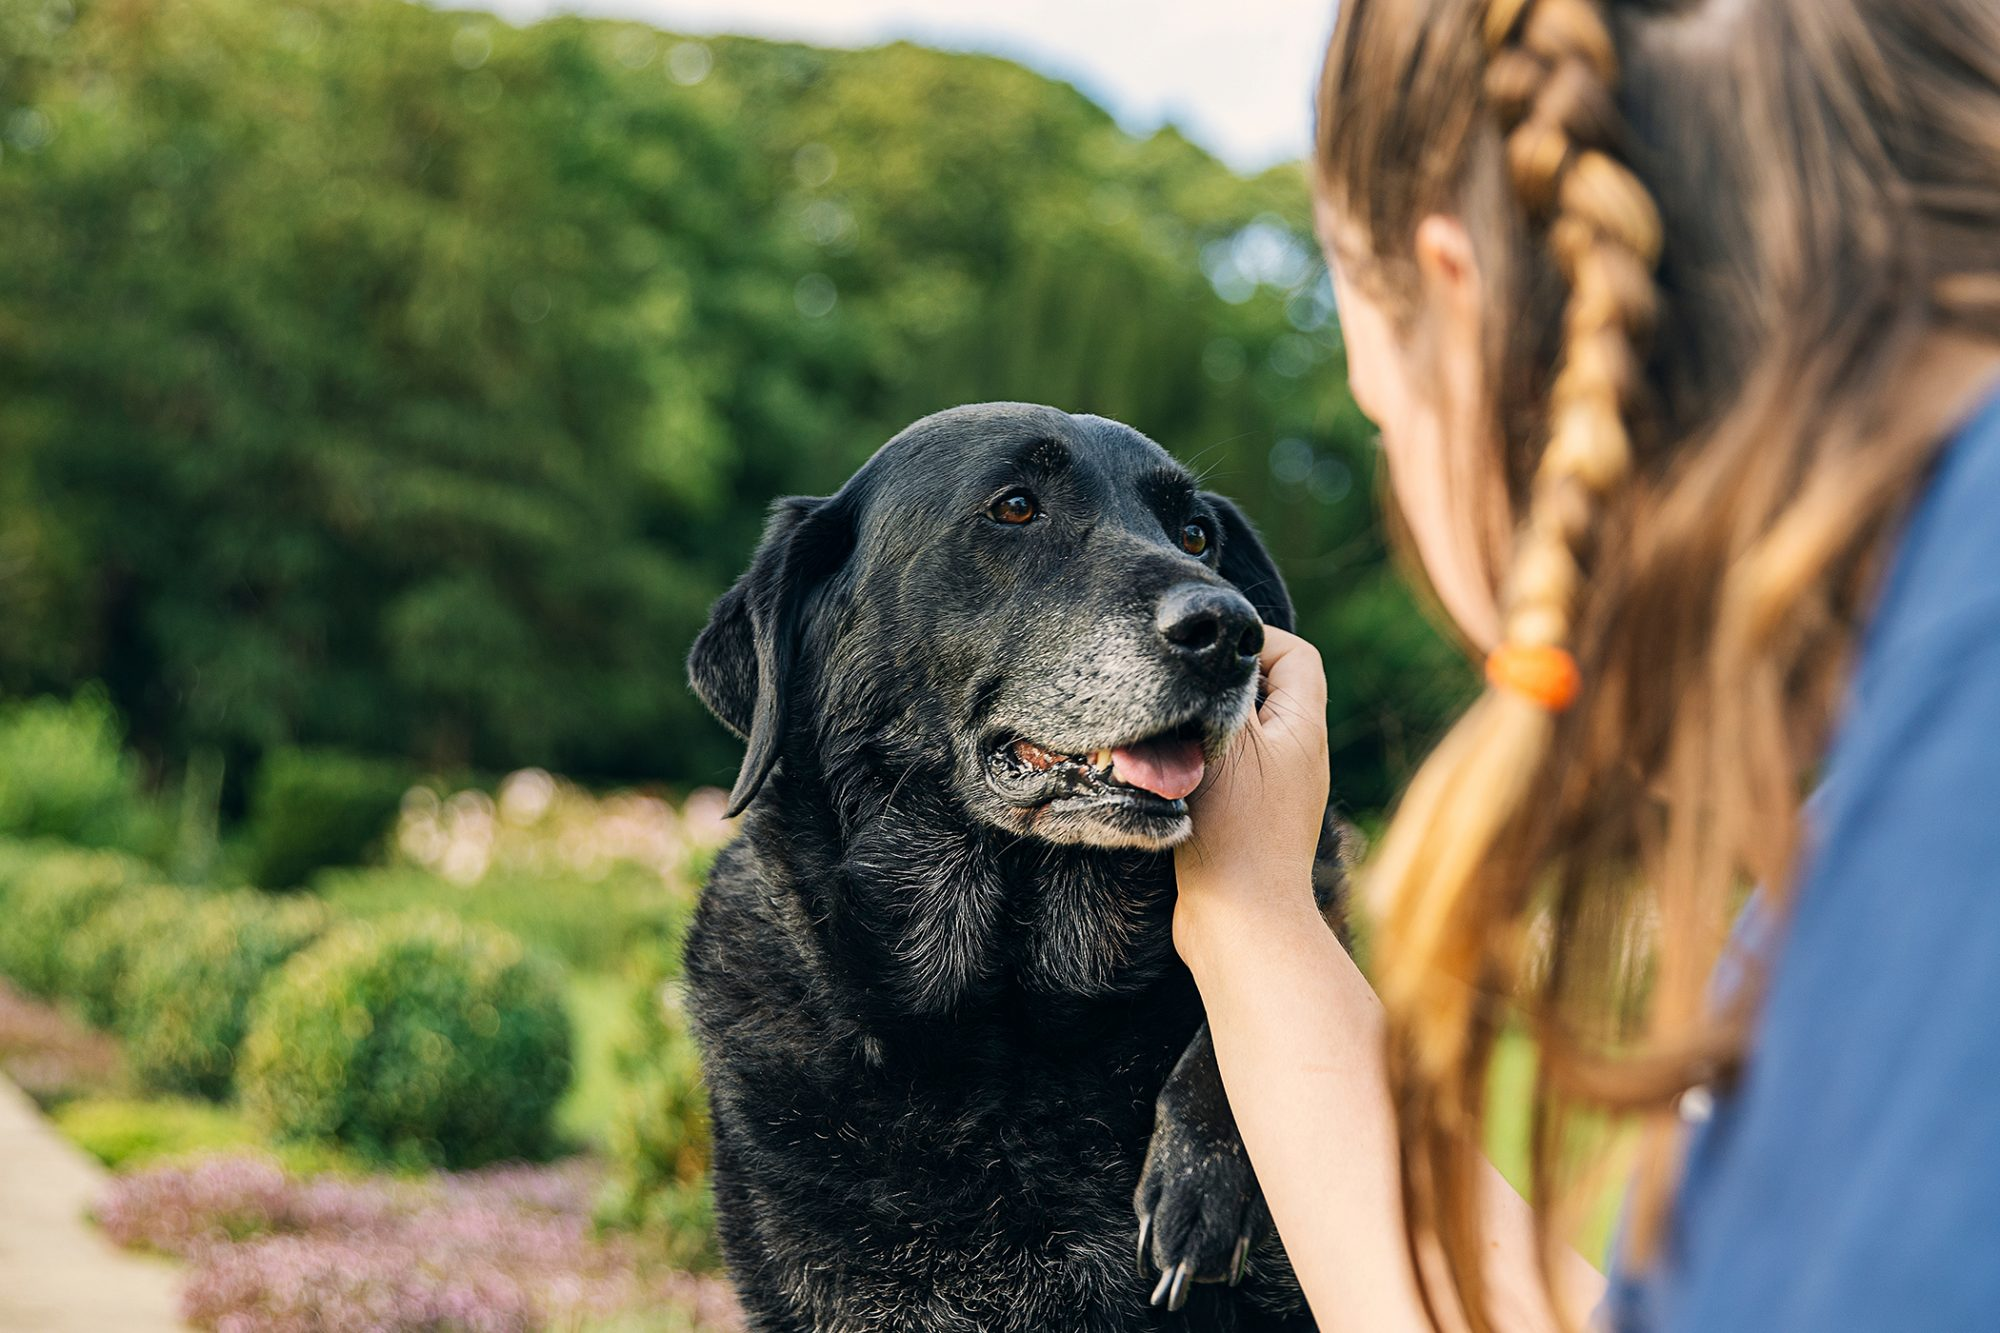 Senior black lab gets pet by young girl on face